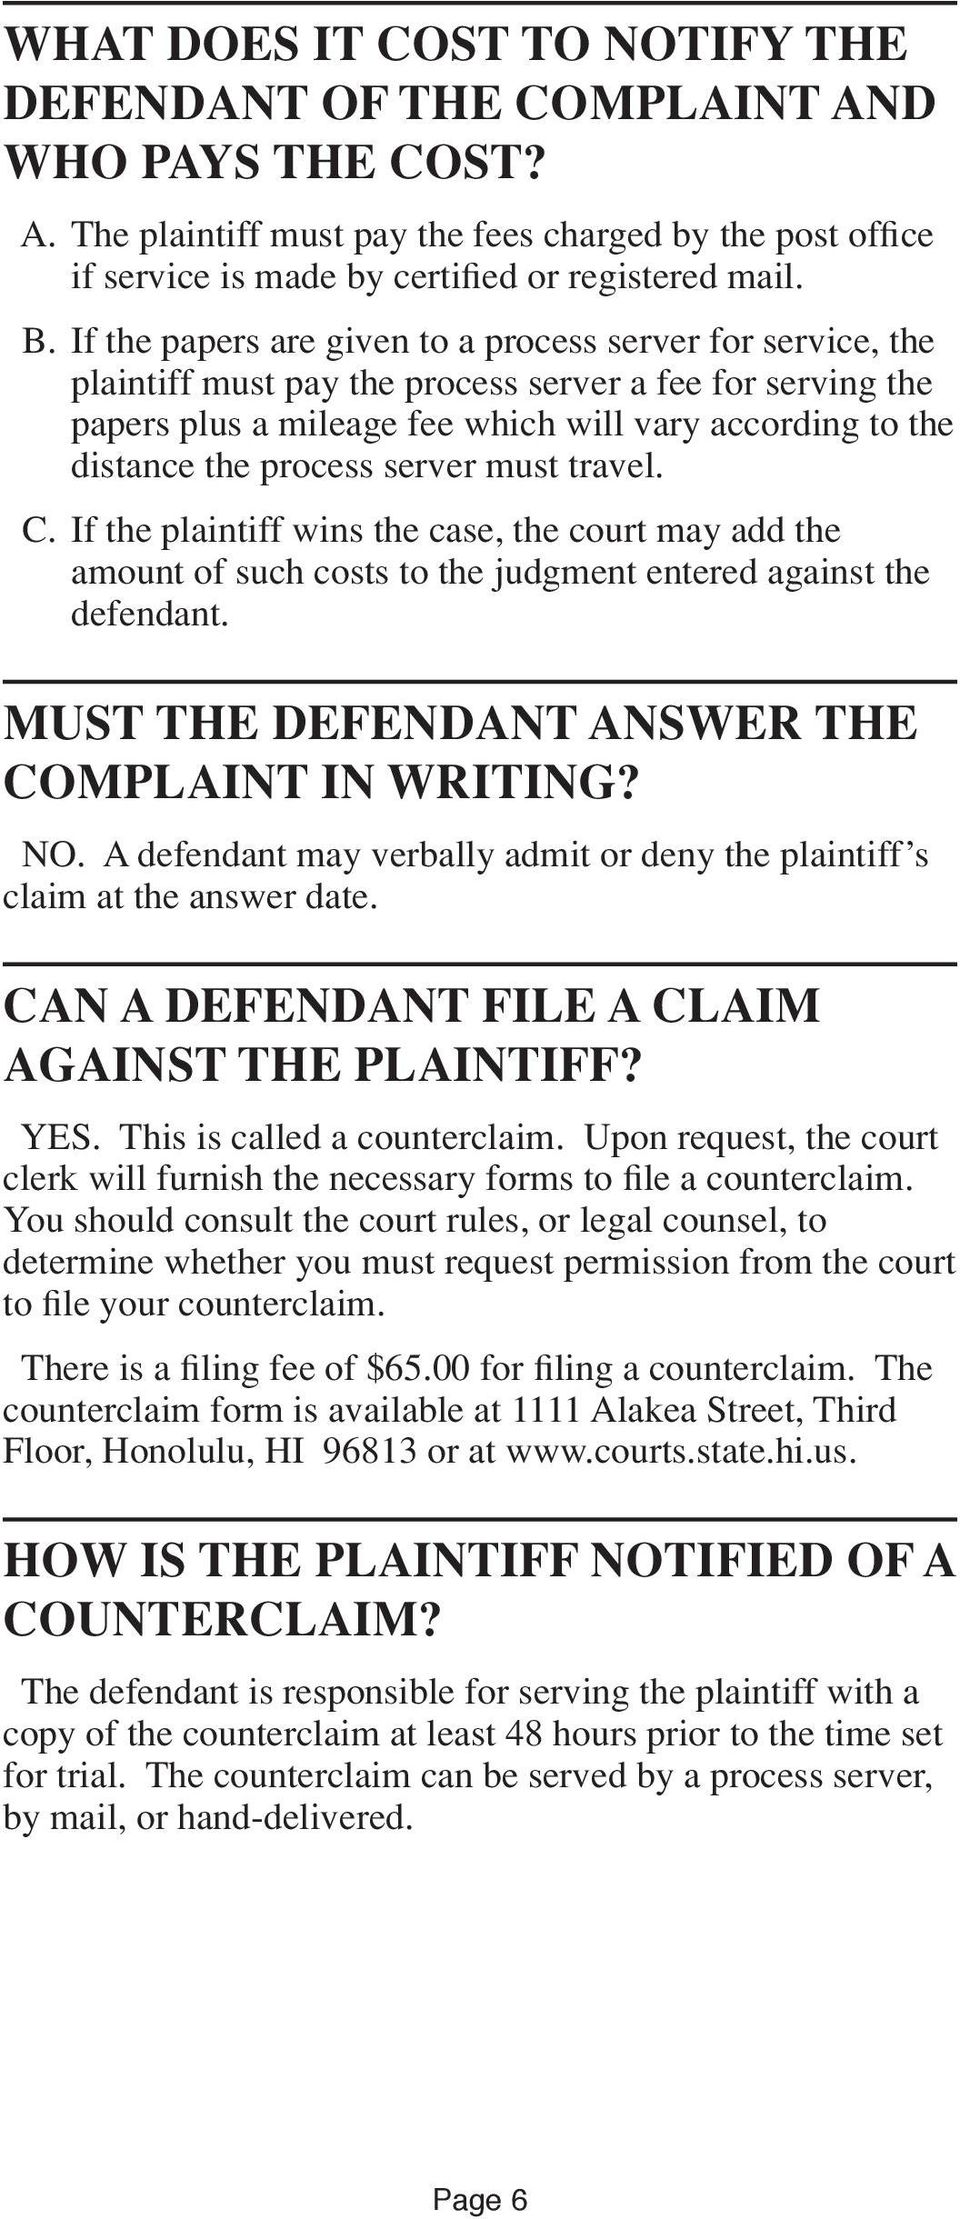 process server must travel. C. If the plaintiff wins the case, the court may add the amount of such costs to the judgment entered against the defendant.